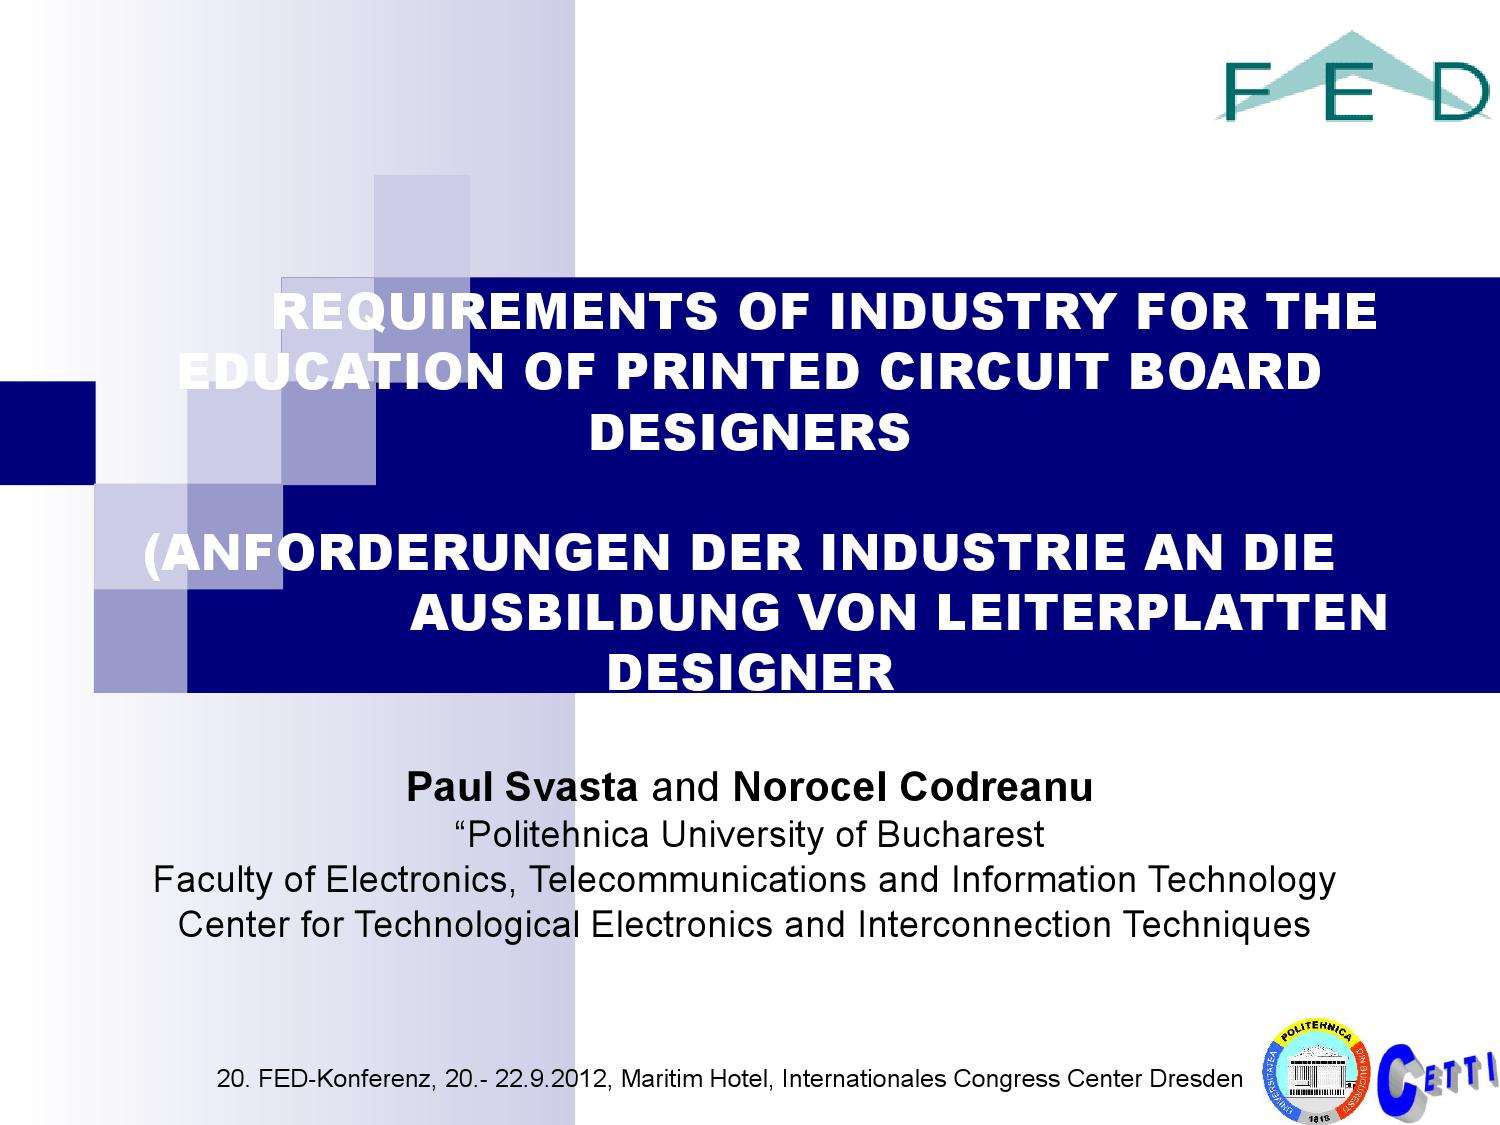 Printed Circuit Board Designer Requirements Of Industry For The Education Designers By Upb Cetti Issuu